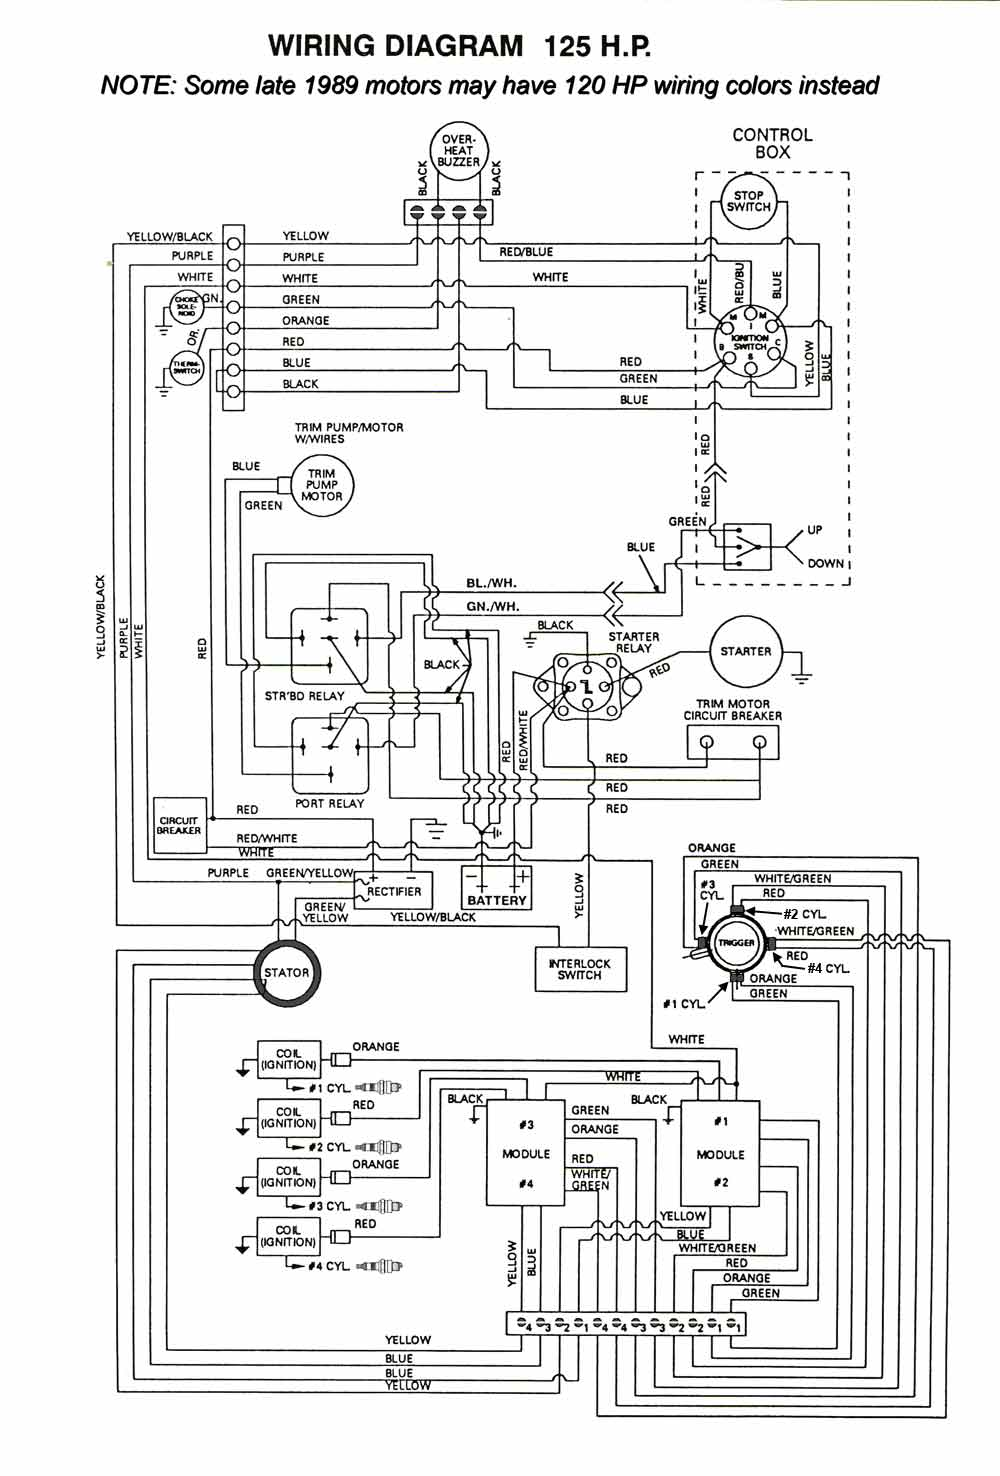 Wiring Diagram For Yamaha 40 Hp : Hp yamaha outboard wiring diagram get free image about